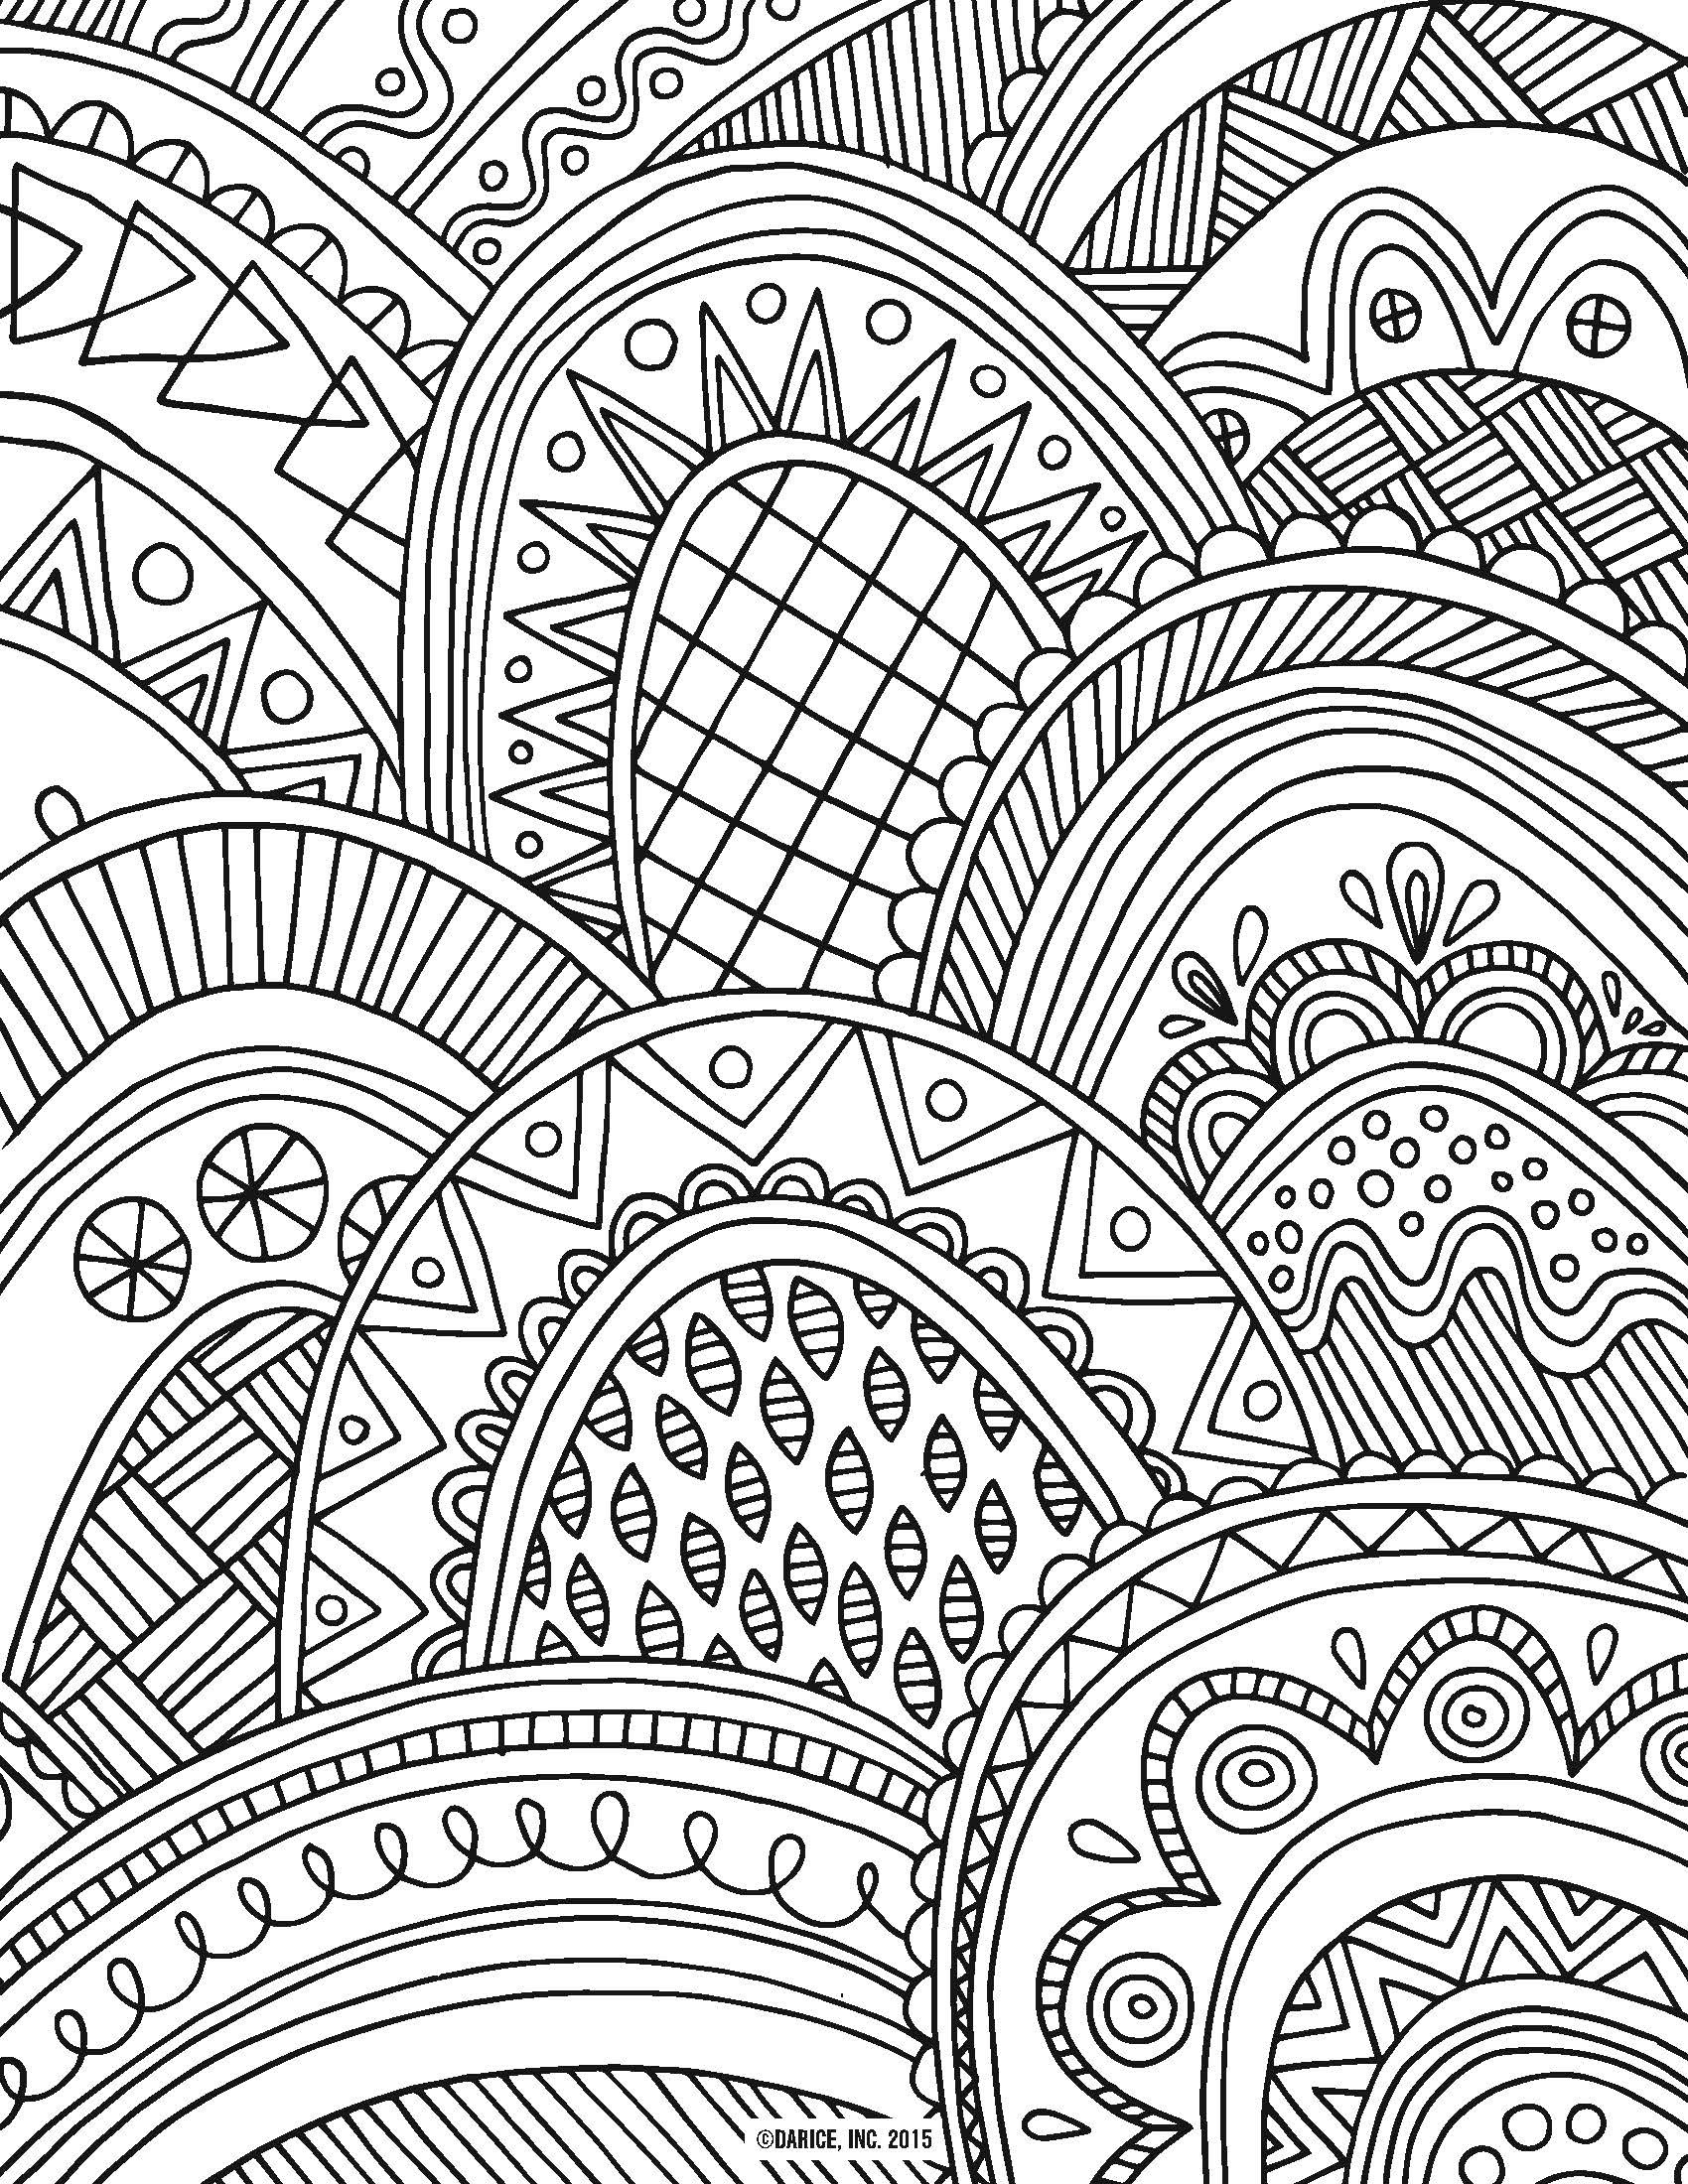 Best ideas about Colorama Free Coloring Pages . Save or Pin 9 Free Printable Adult Coloring Pages Now.